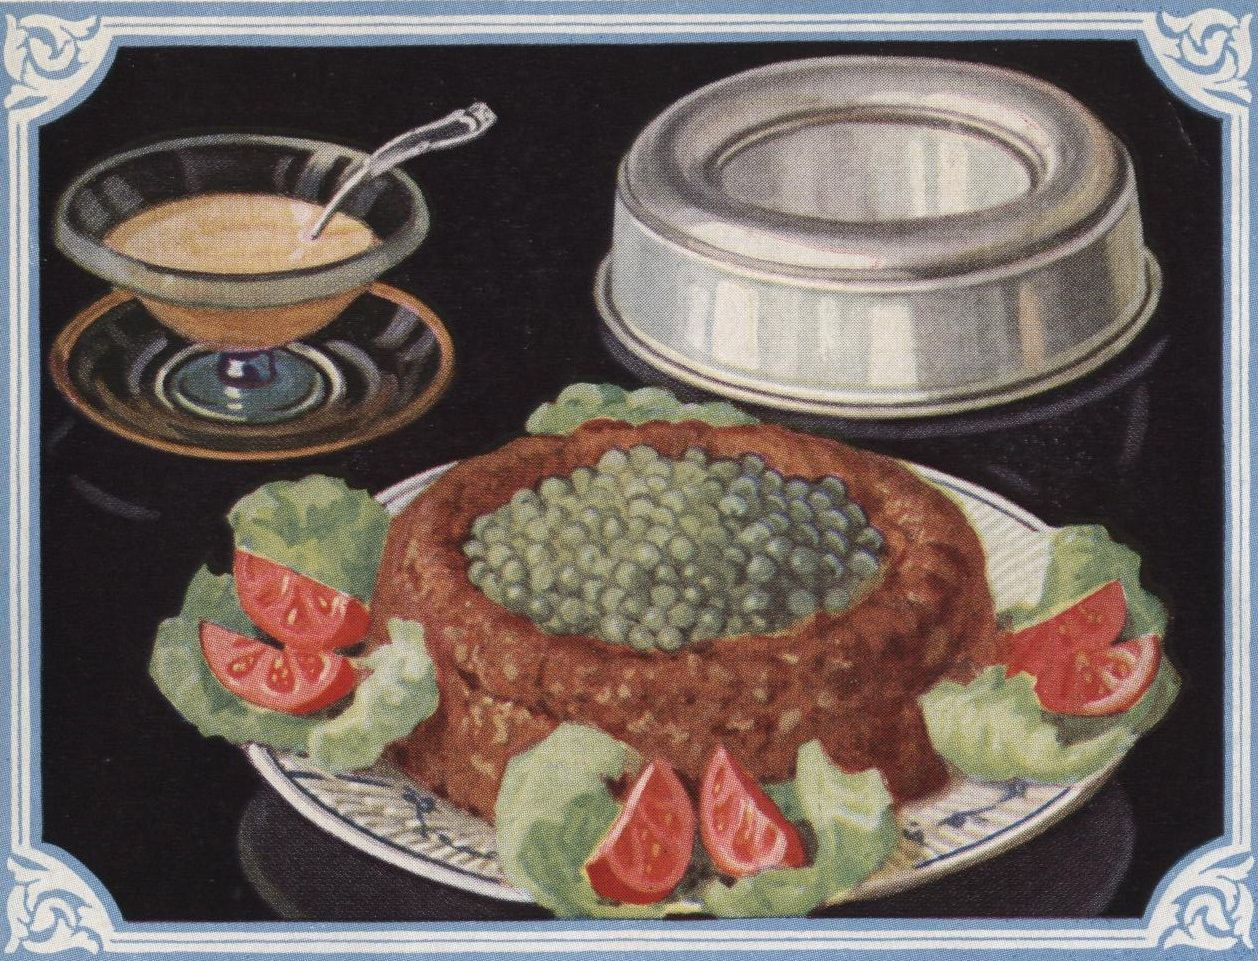 #cooking Meat Loaf from What's New in Cookery (1929)